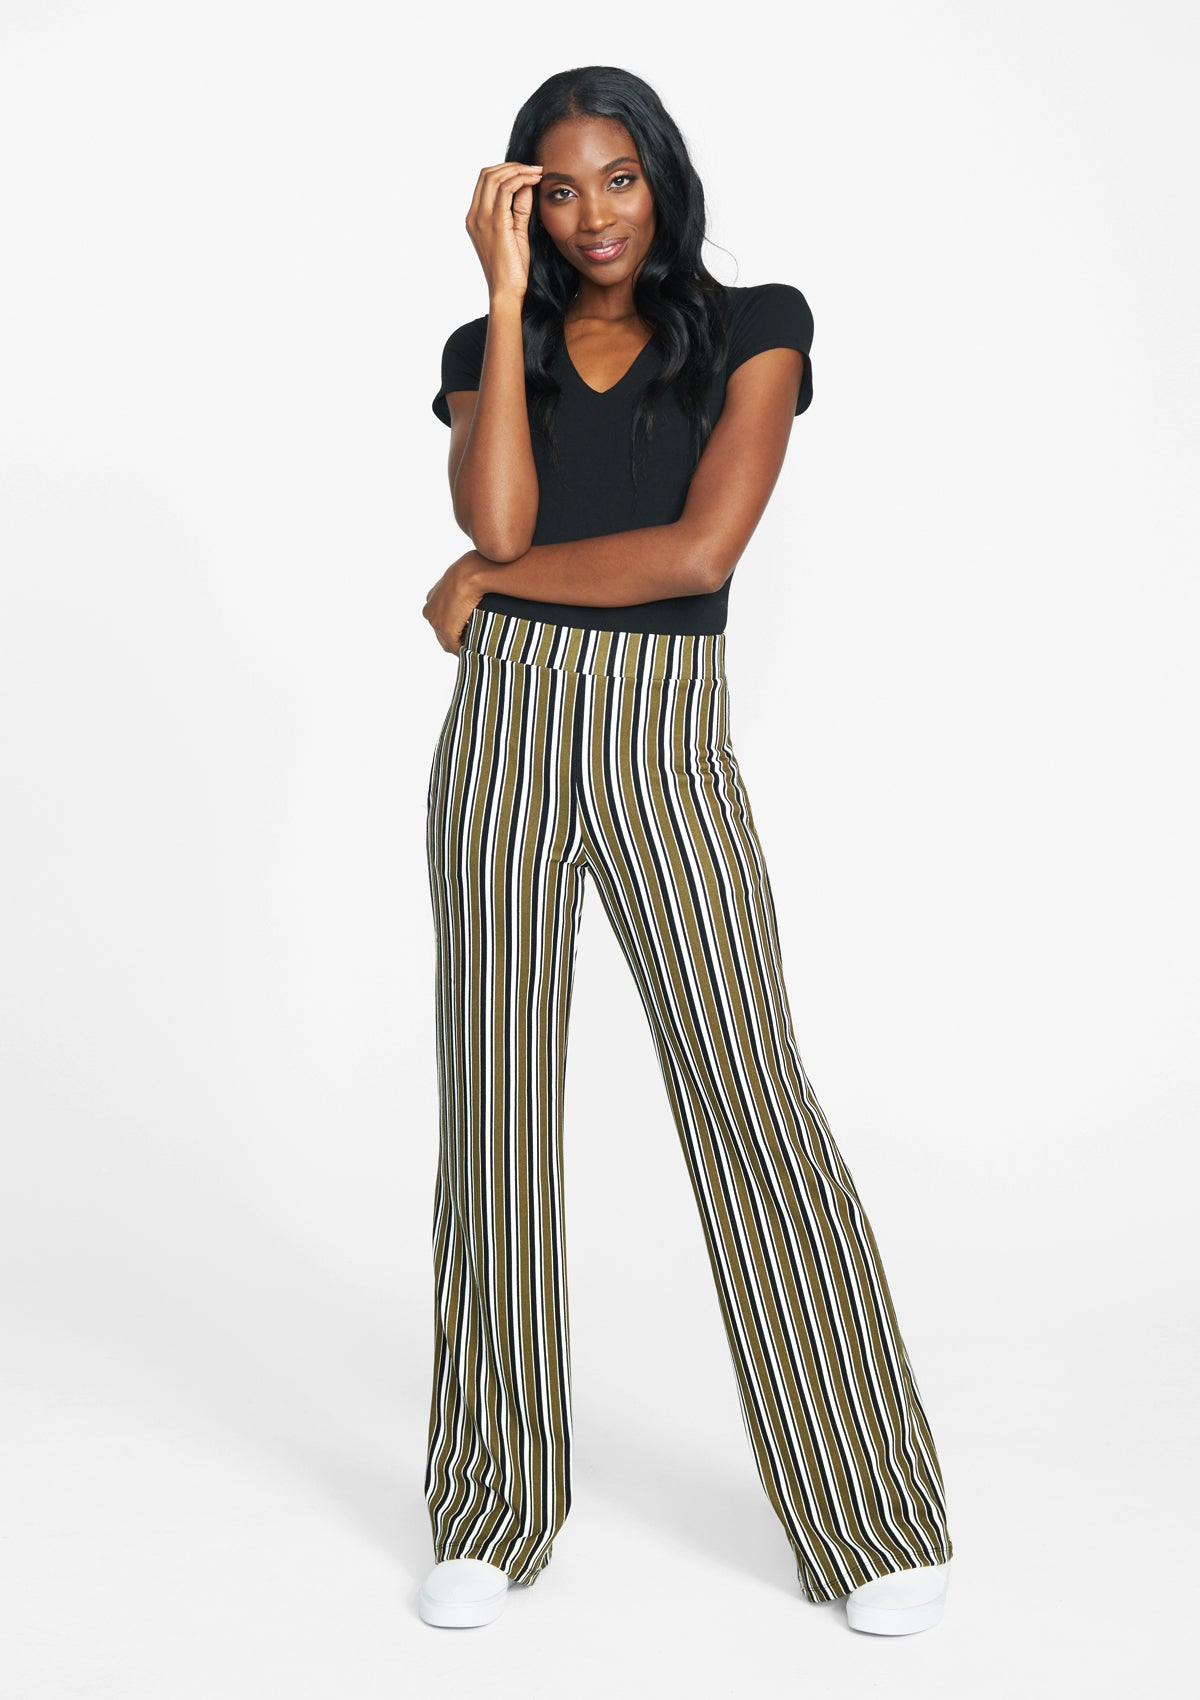 Alloy Apparel Tall Cassie Flare Pants for Women in Olive Stripe Size L   Polyester